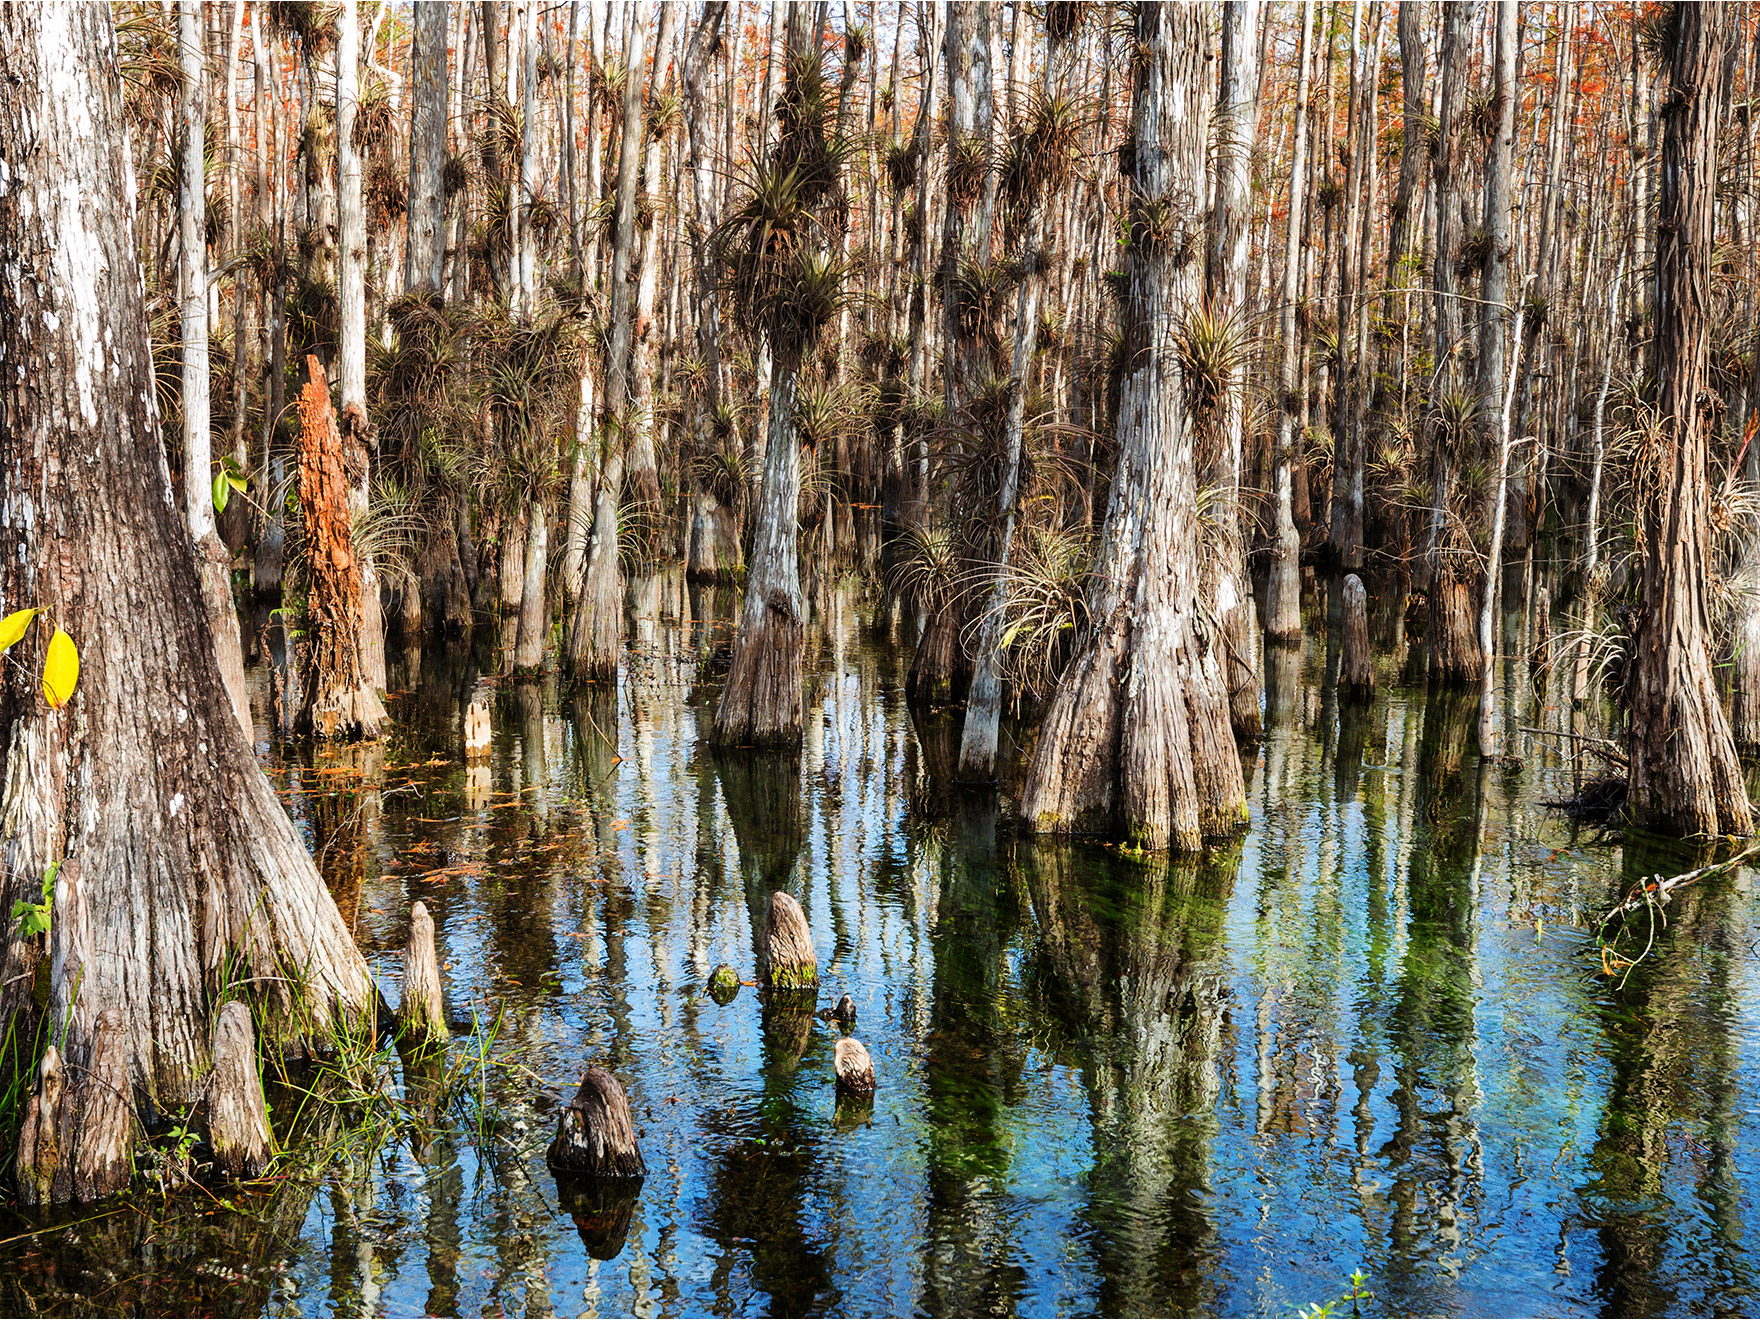 Trees in the everglades surrounded by water